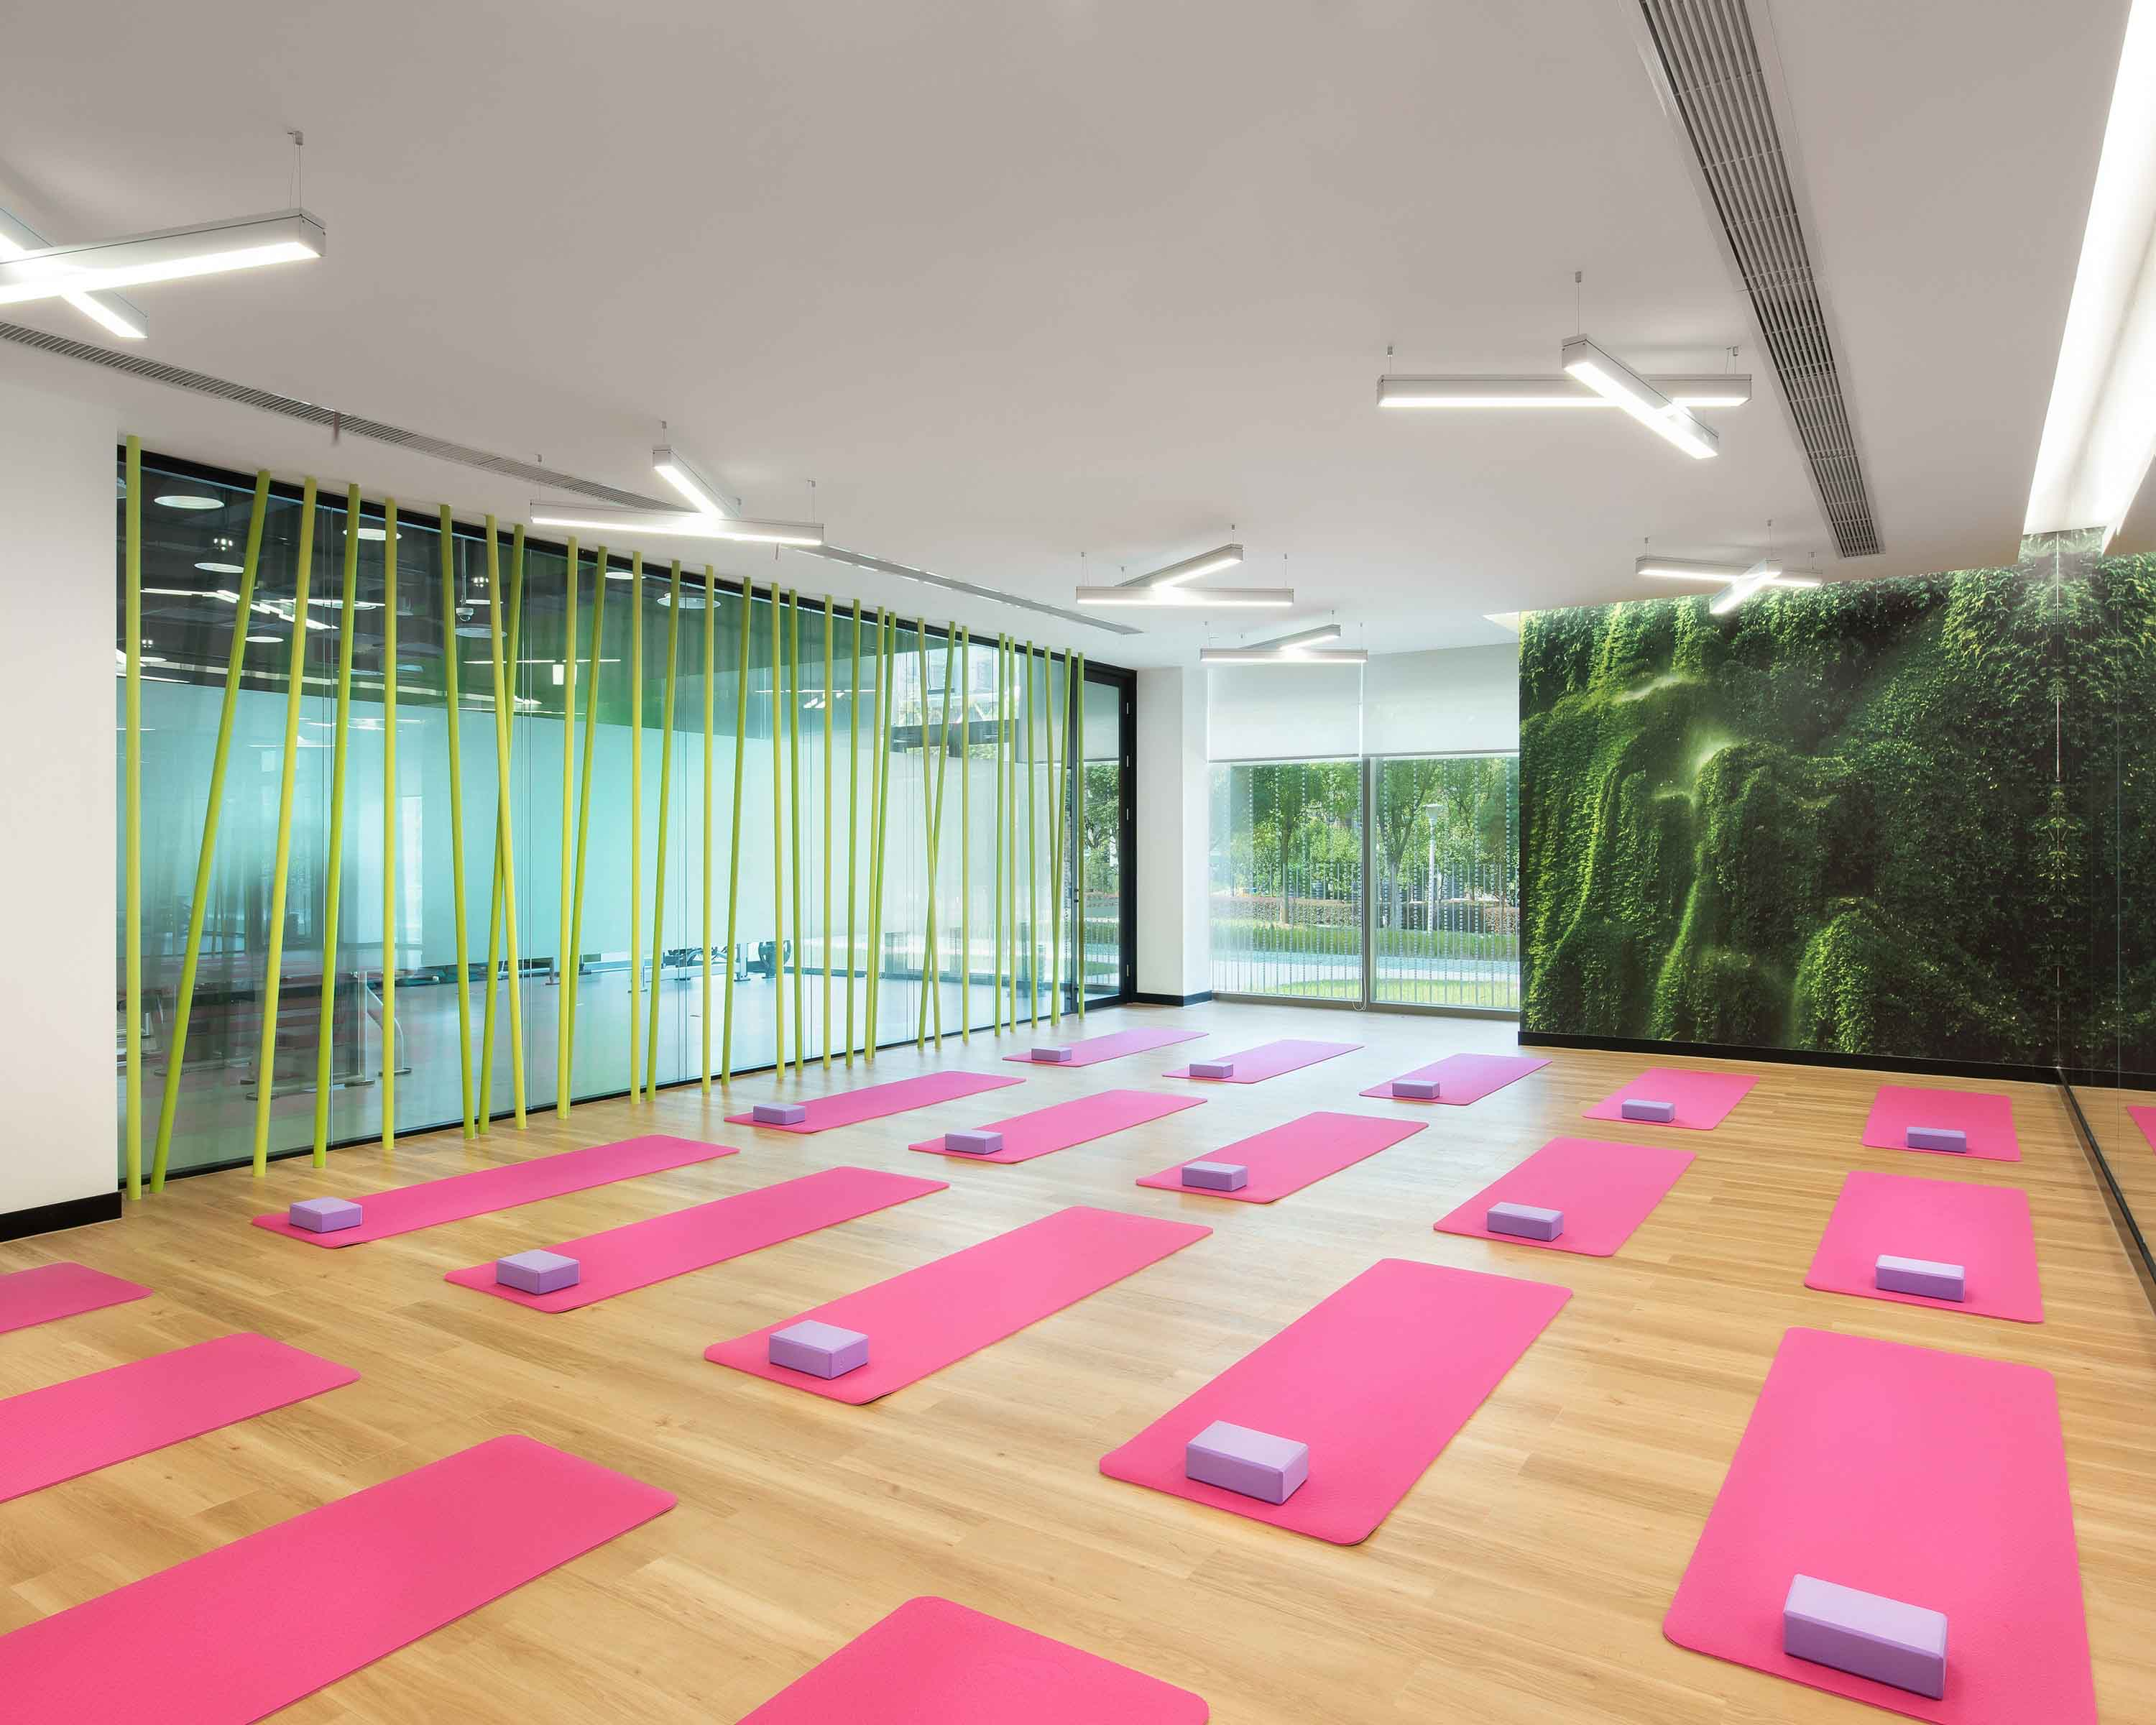 PDM International - Microsoft Suzhou Technology Center for employee wellbeing in interior wellness blog